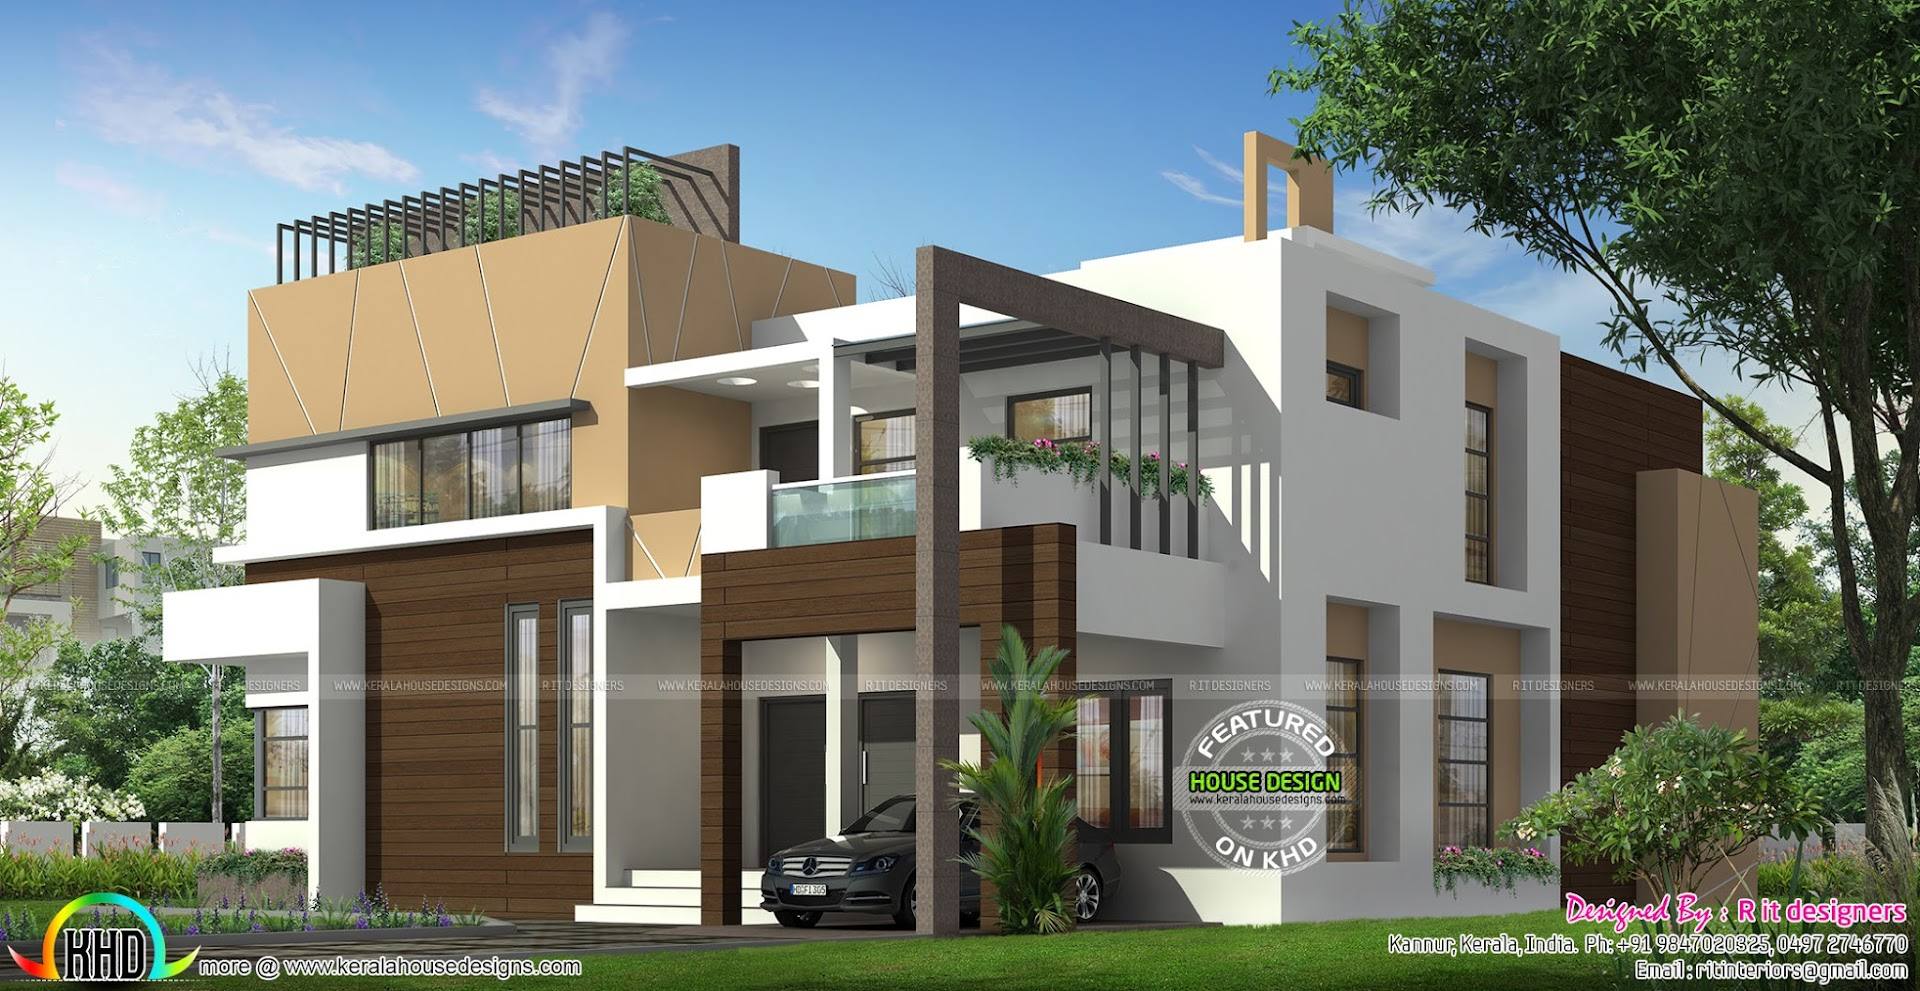 Luxurious 5 bedroom ultra modern home kerala home design for Ultra modern house